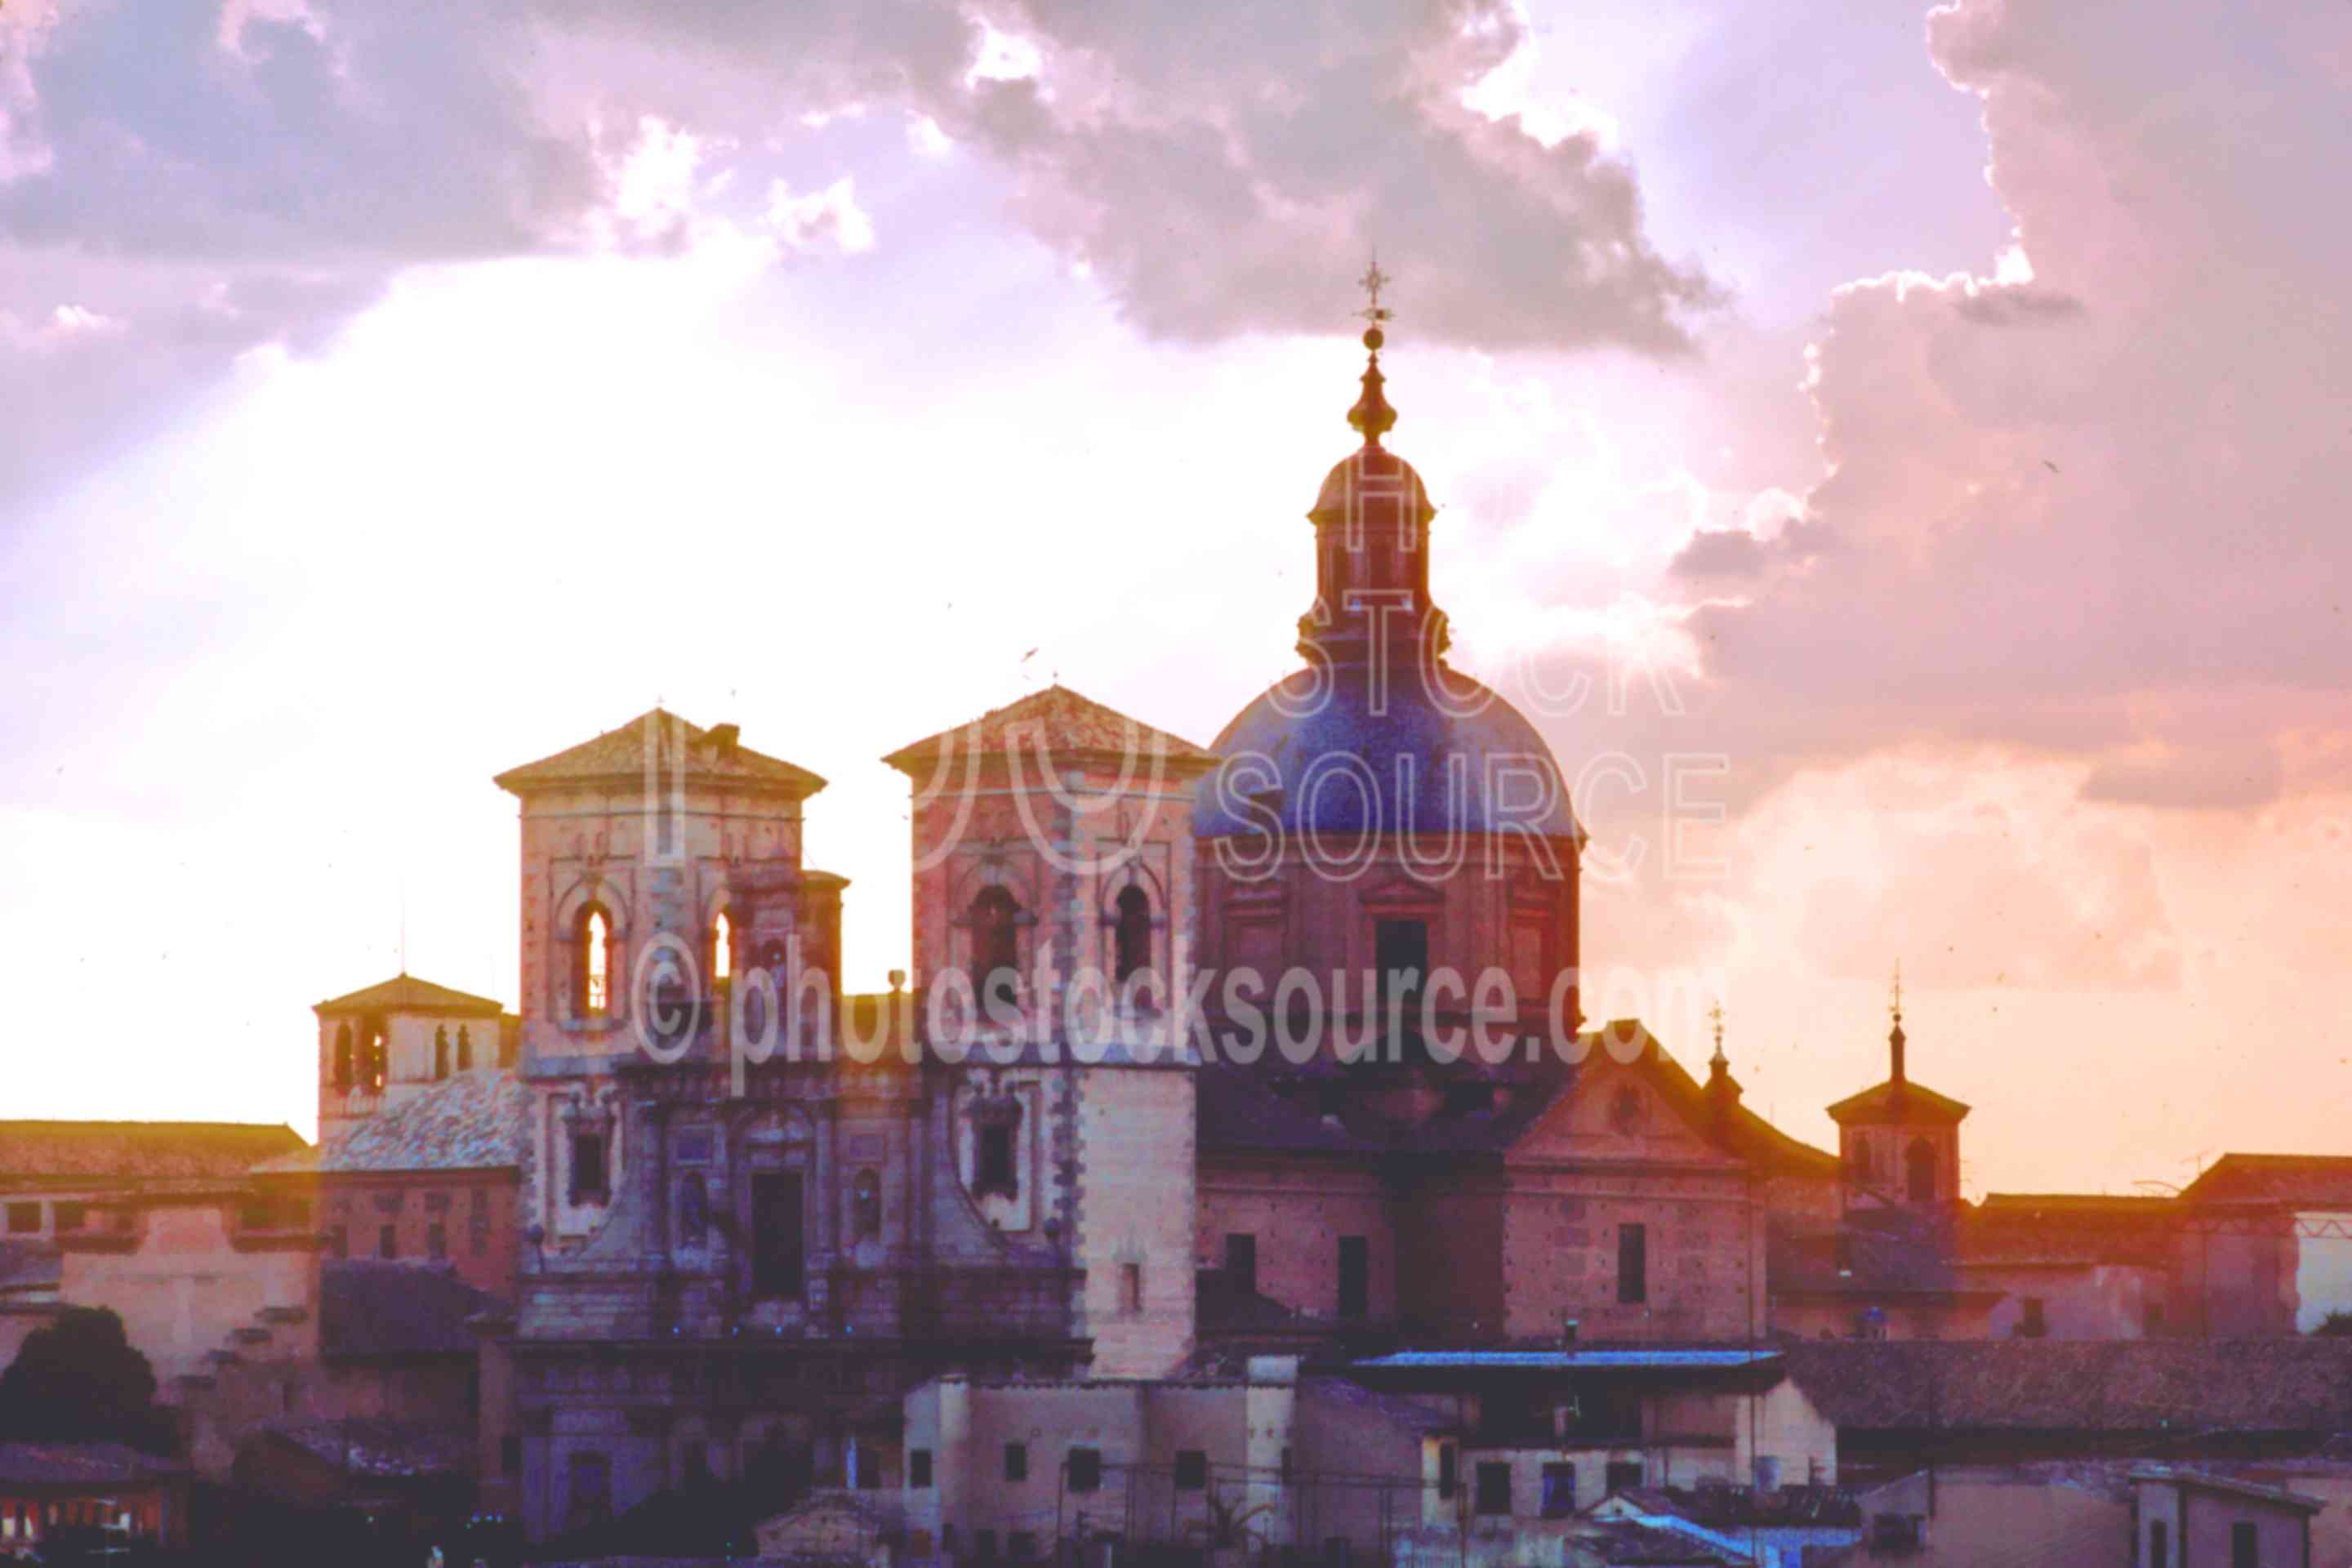 Cathedral near Sunset,cathedral,cloud,europe,sunset,architecture,churches,religion